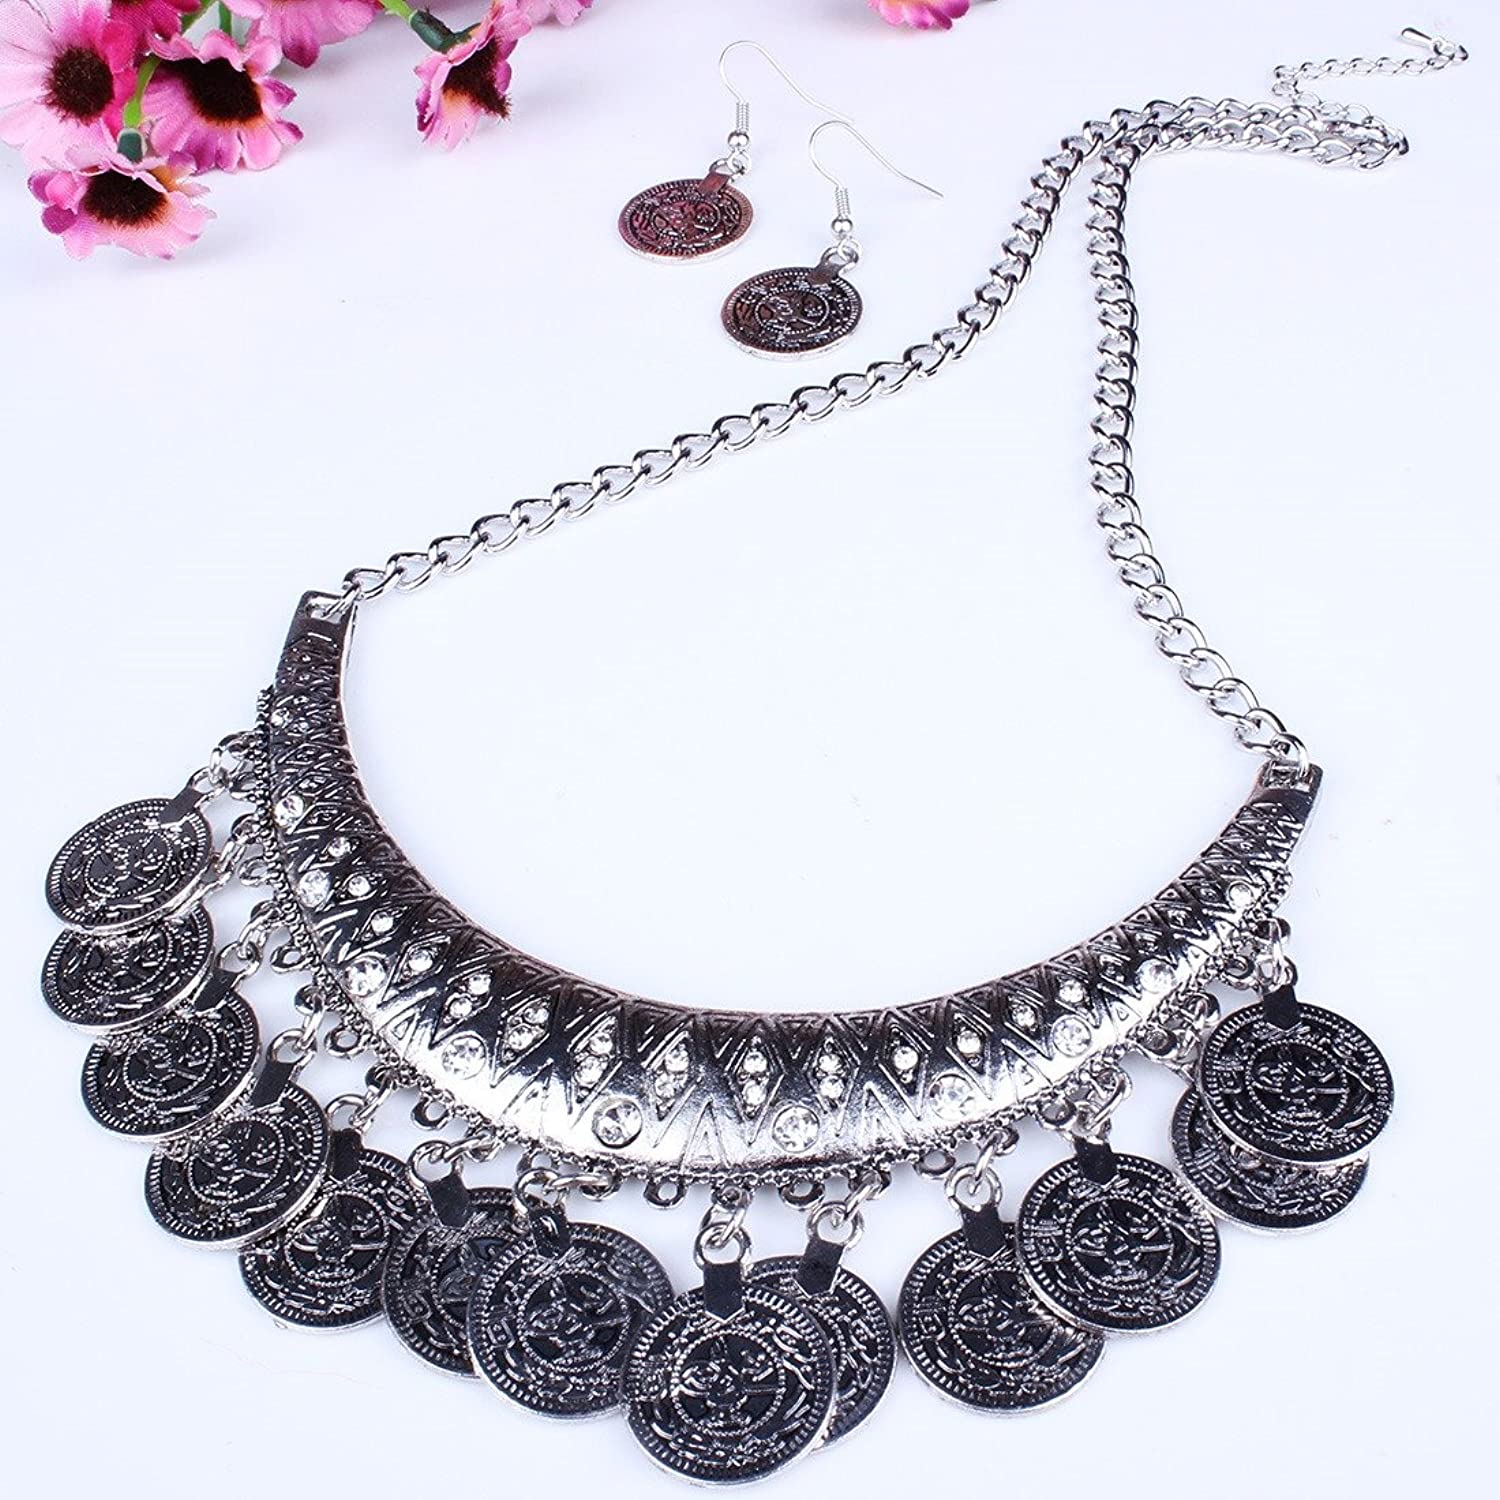 Amazon.com: QIYUN.Z (TM) Tribal Jewelry Flat Round Dangle Coin Tassel Pendant Chain Necklace For Women: Jewelry